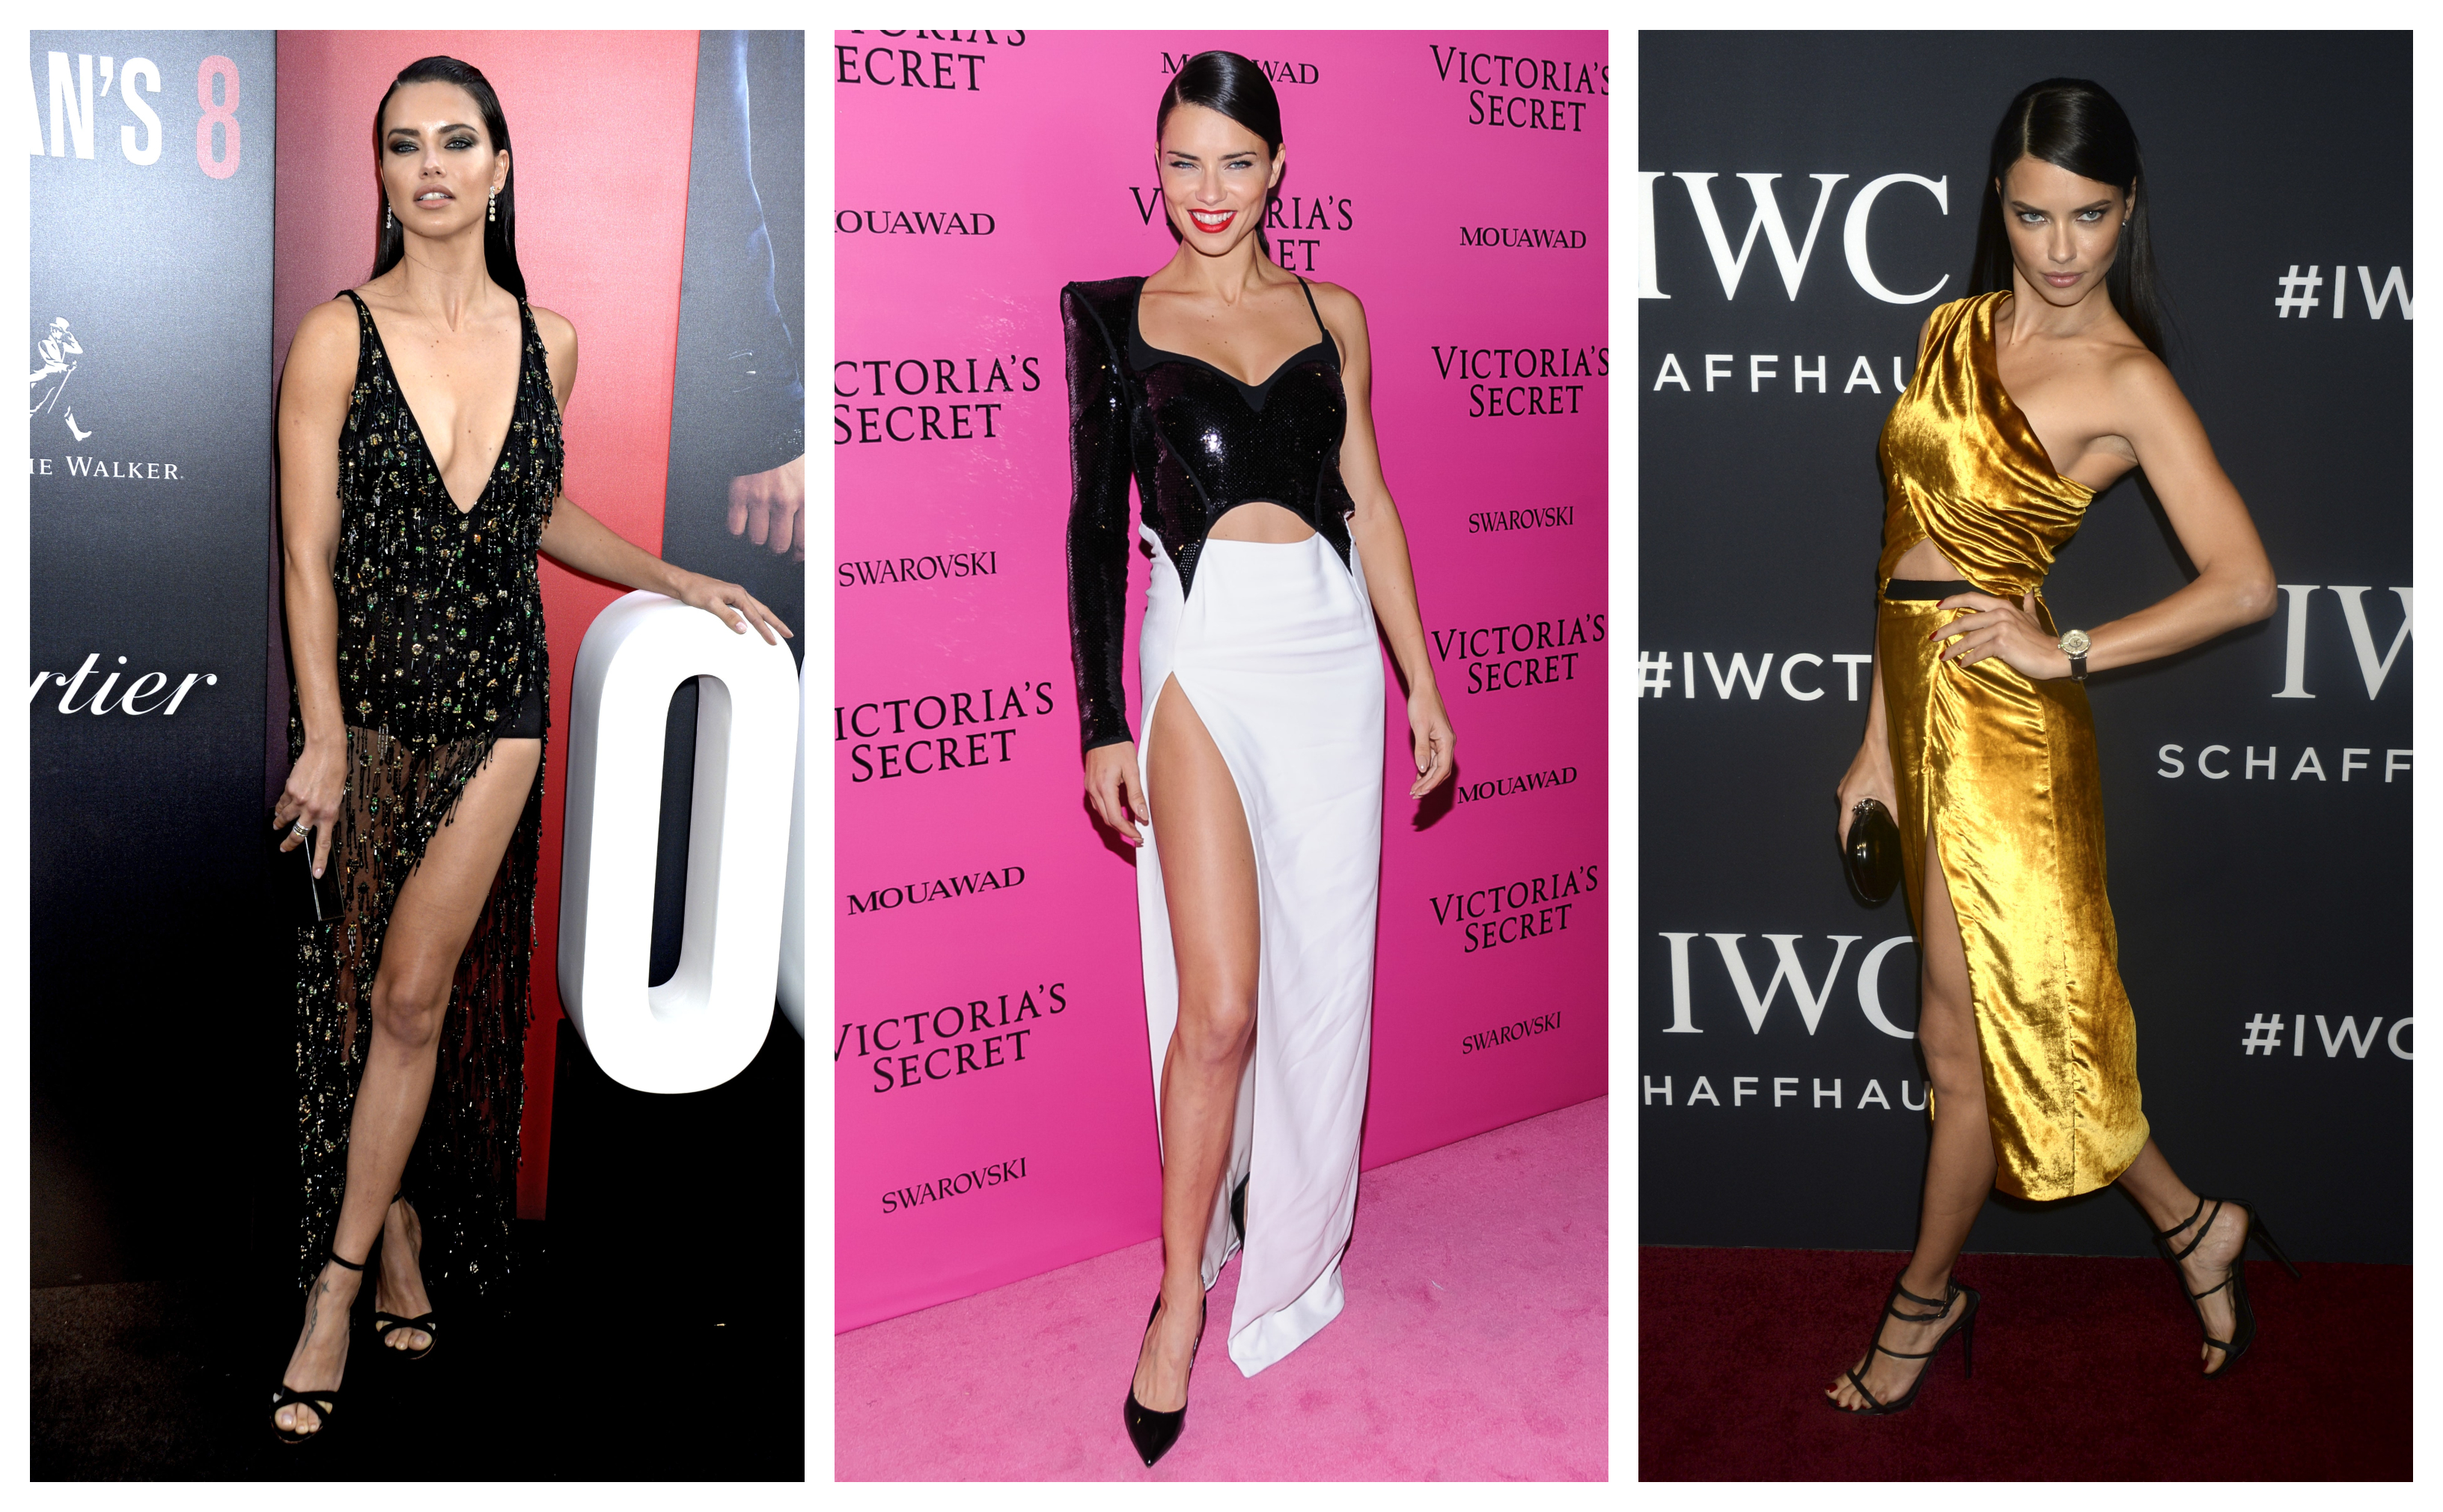 With plunging necklines and sky-high thigh slits, Adriana Lima proves that a night gown can be just as sexy as the tiniest lingerie. (Photo: WENN)